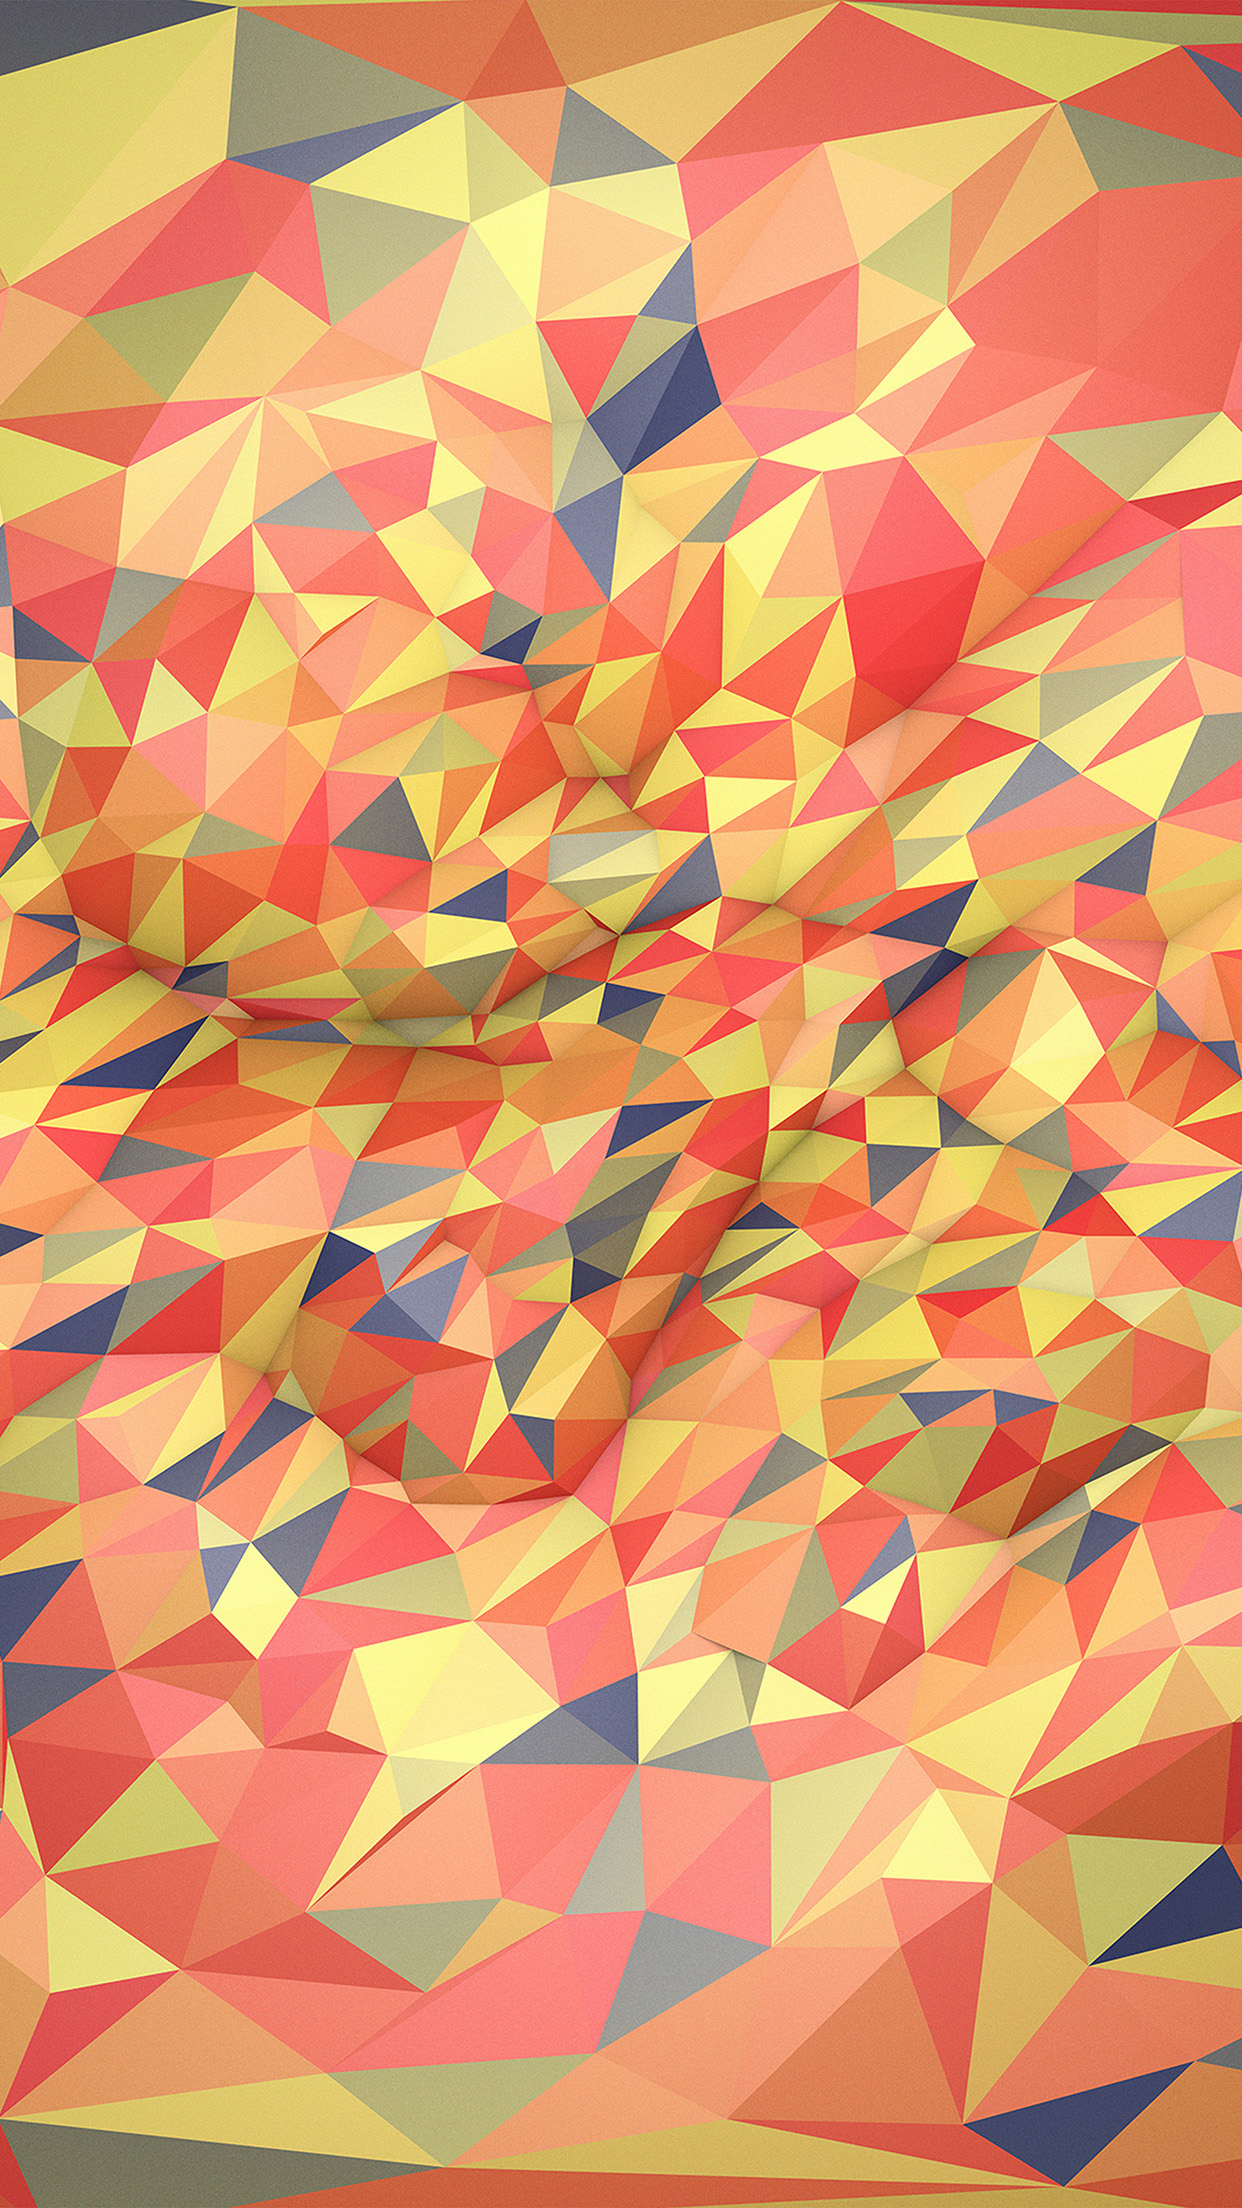 DOWNLOAD A SHERLOCK